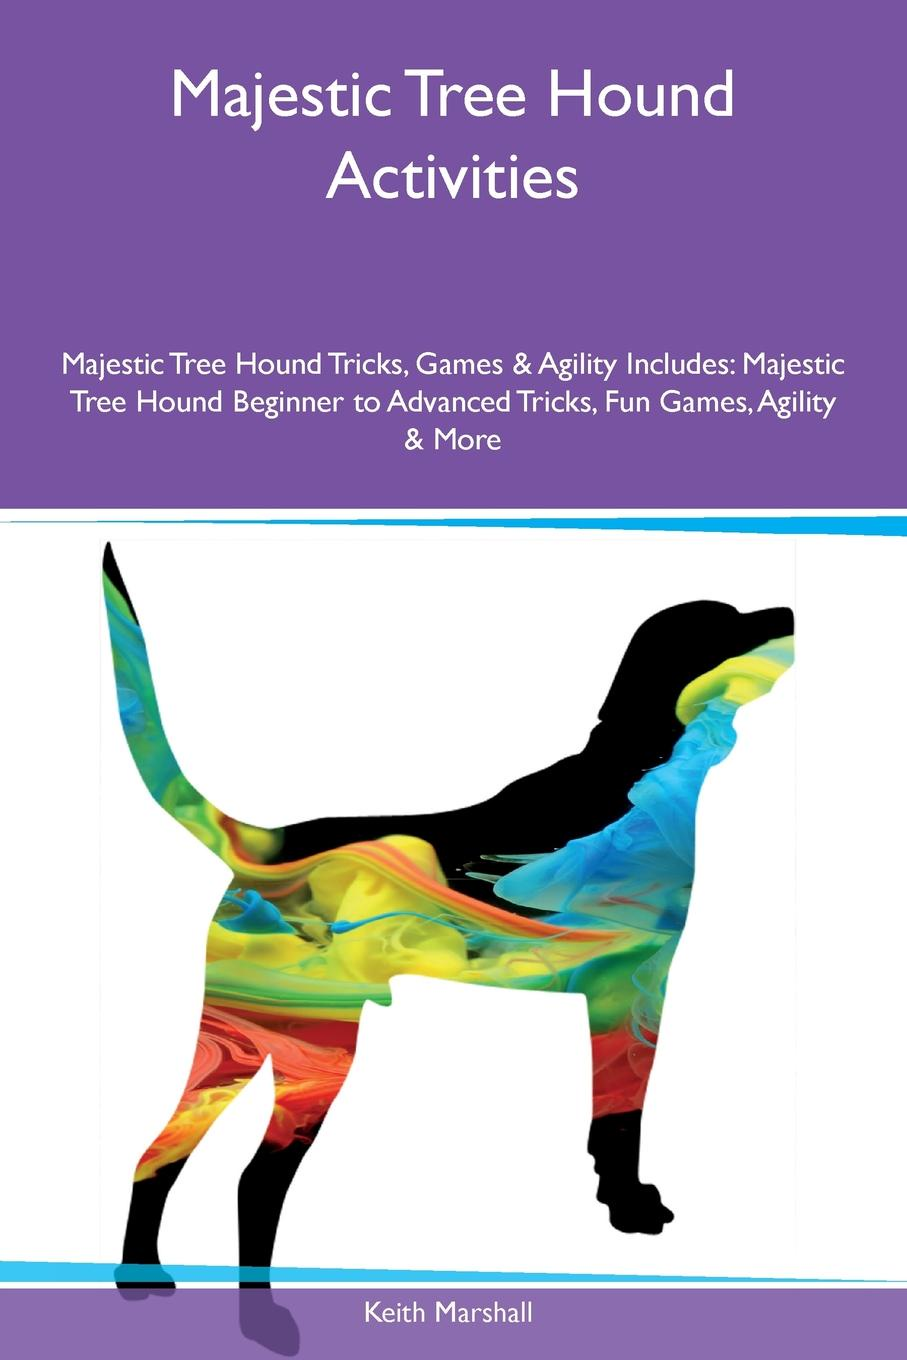 Keith Marshall Majestic Tree Hound Activities Majestic Tree Hound Tricks, Games & Agility Includes. Majestic Tree Hound Beginner to Advanced Tricks, Fun Games, Agility & More